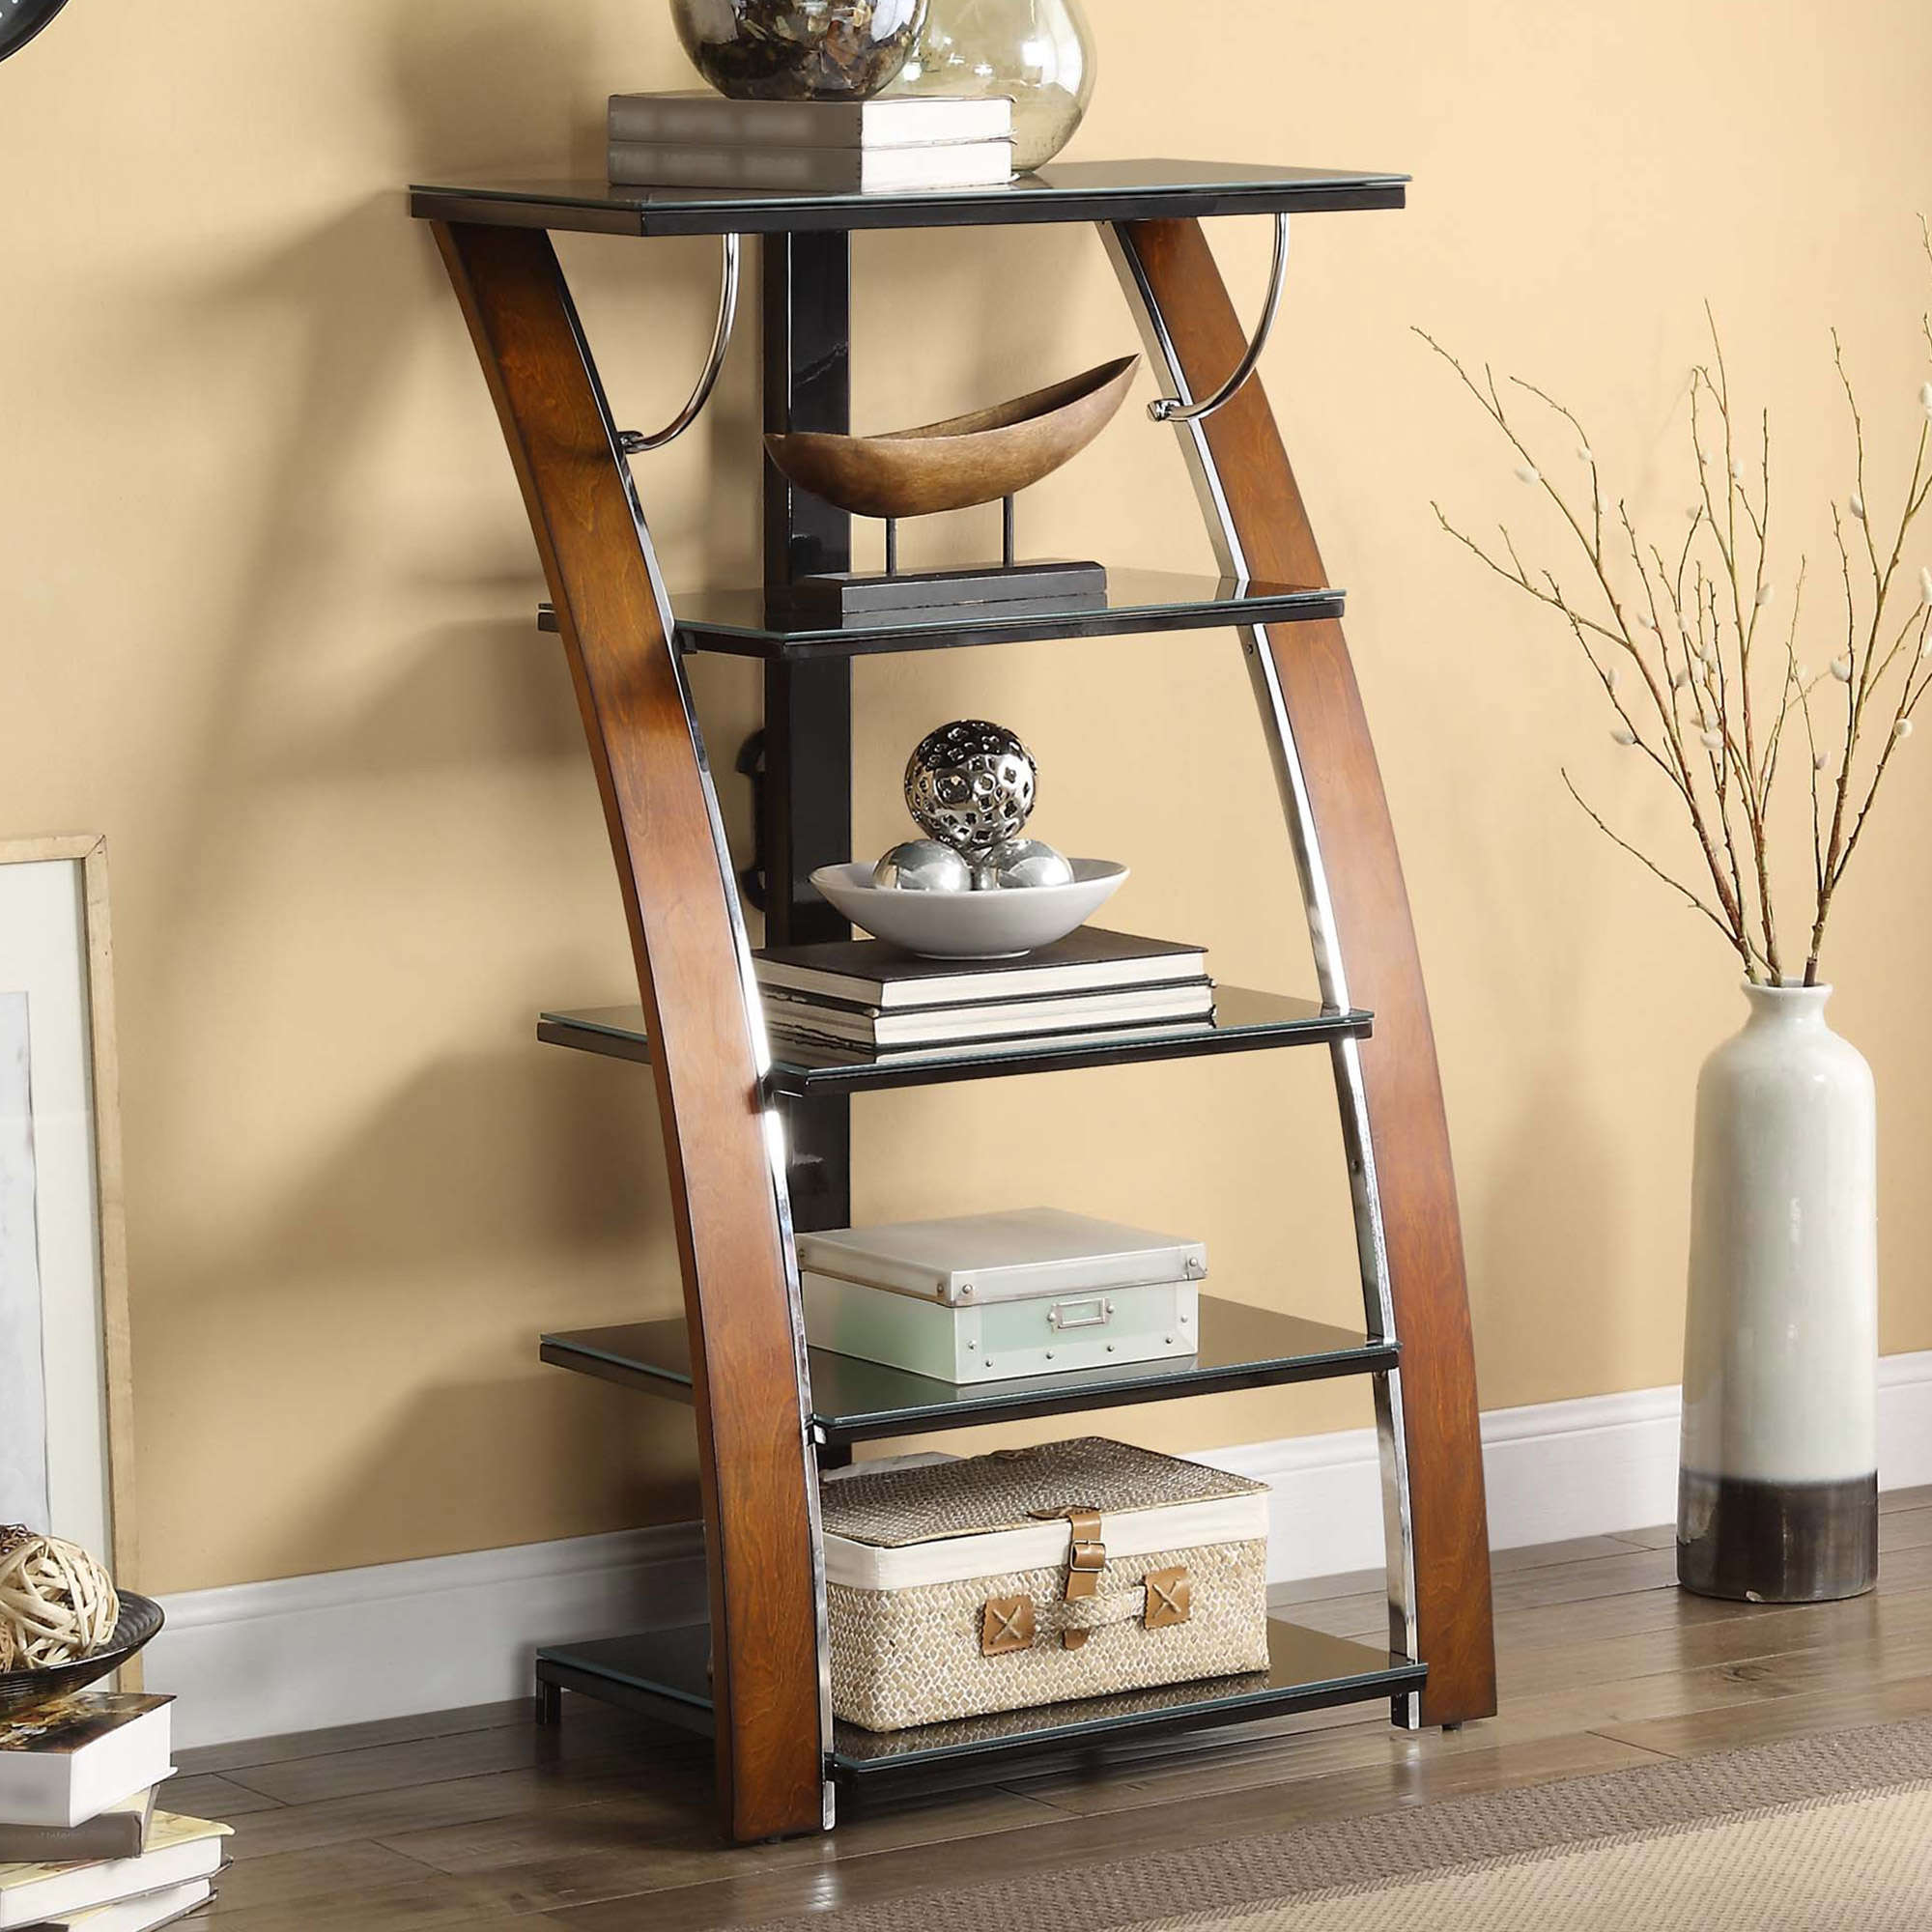 Whalen 5-Shelf Audio/Video Tower for Your Home, Brown Cherry Finish